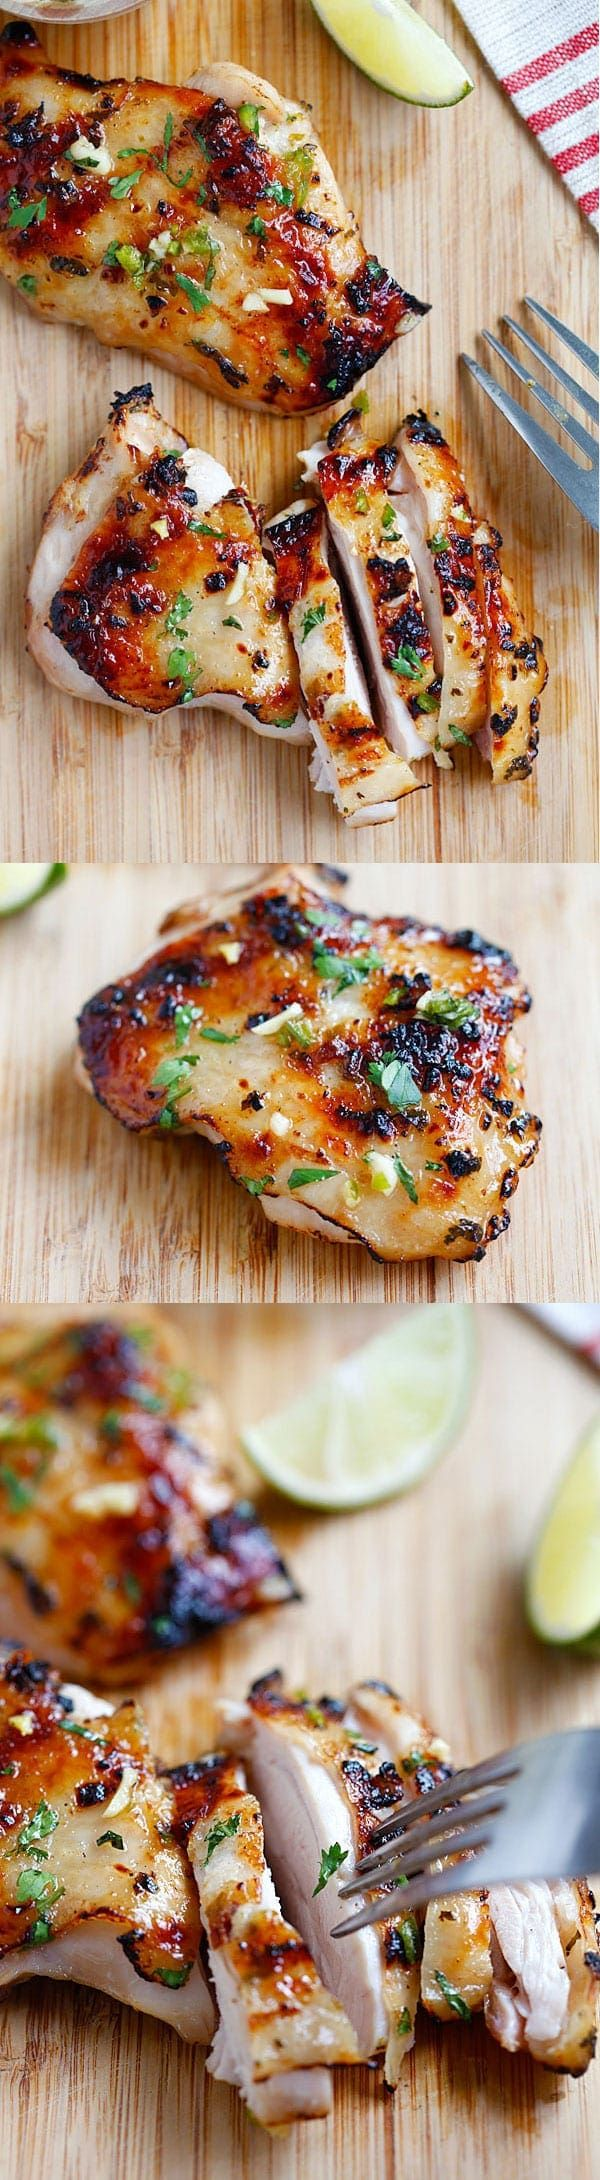 Chili lime chicken - moist and delicious chicken marinated with chili and lime and grill to perfection. Easy recipe that takes 30 mins! | rasamalaysia.com